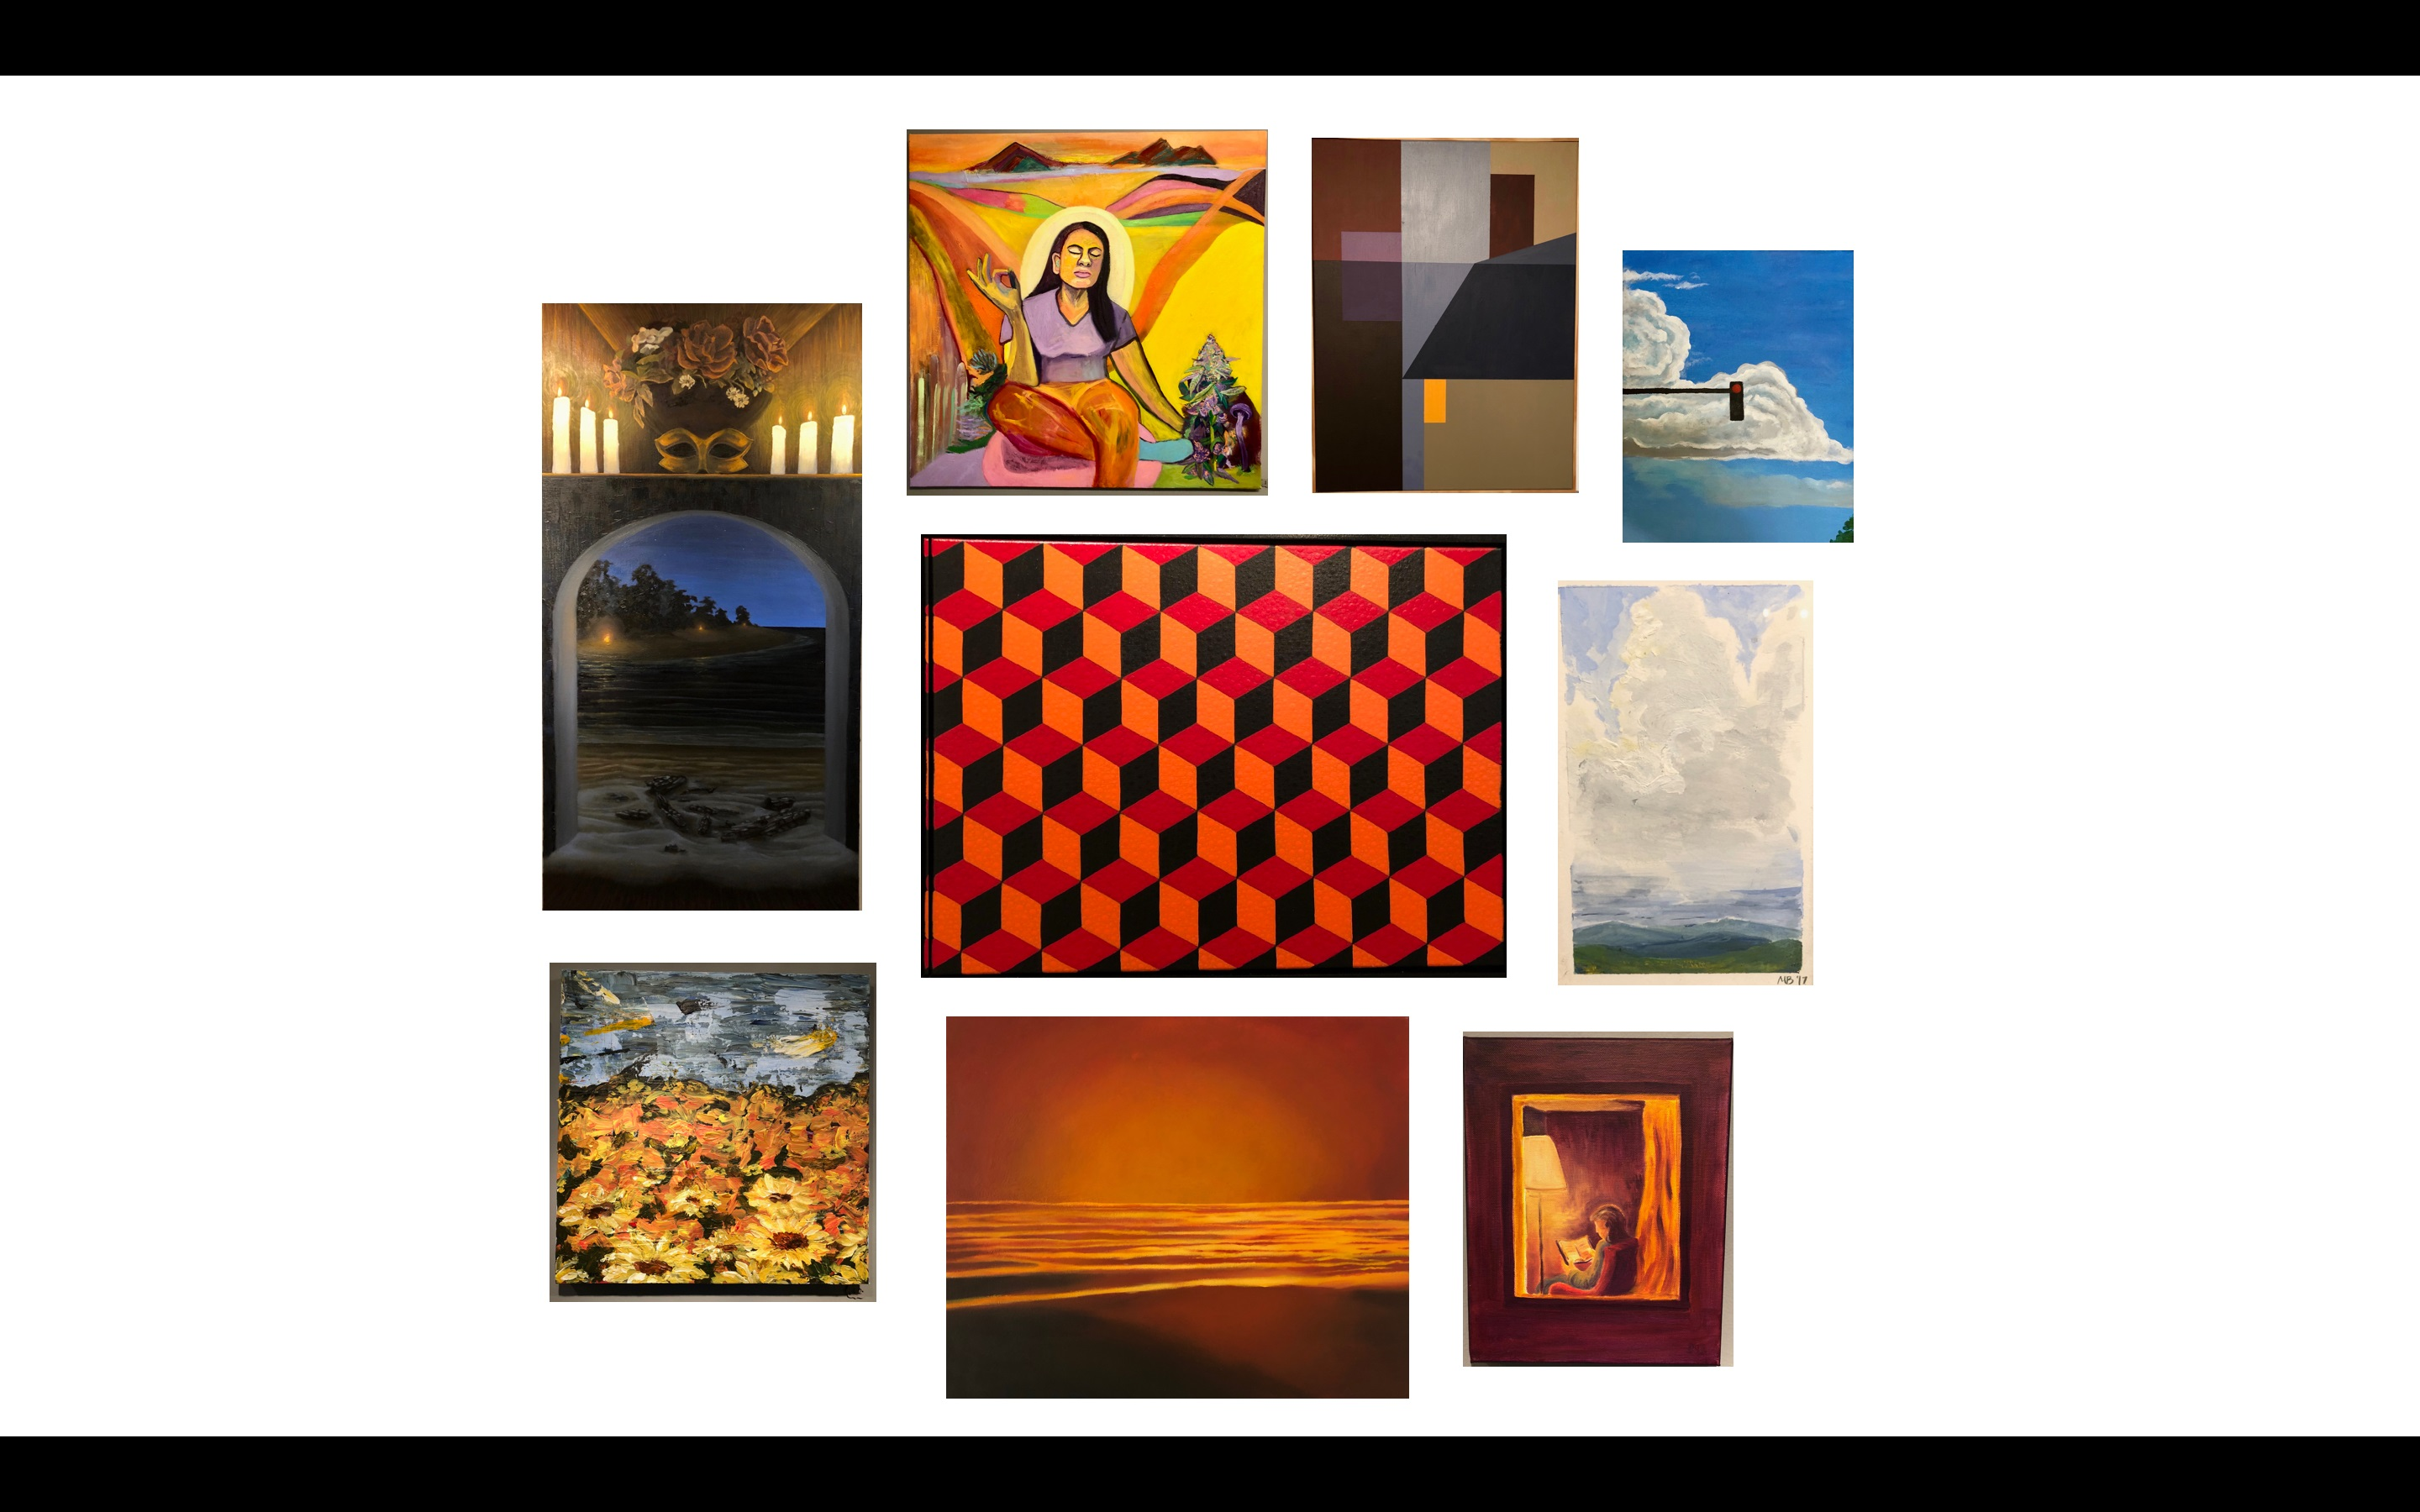 Groove Gallery Exhibition September 27 - October 22